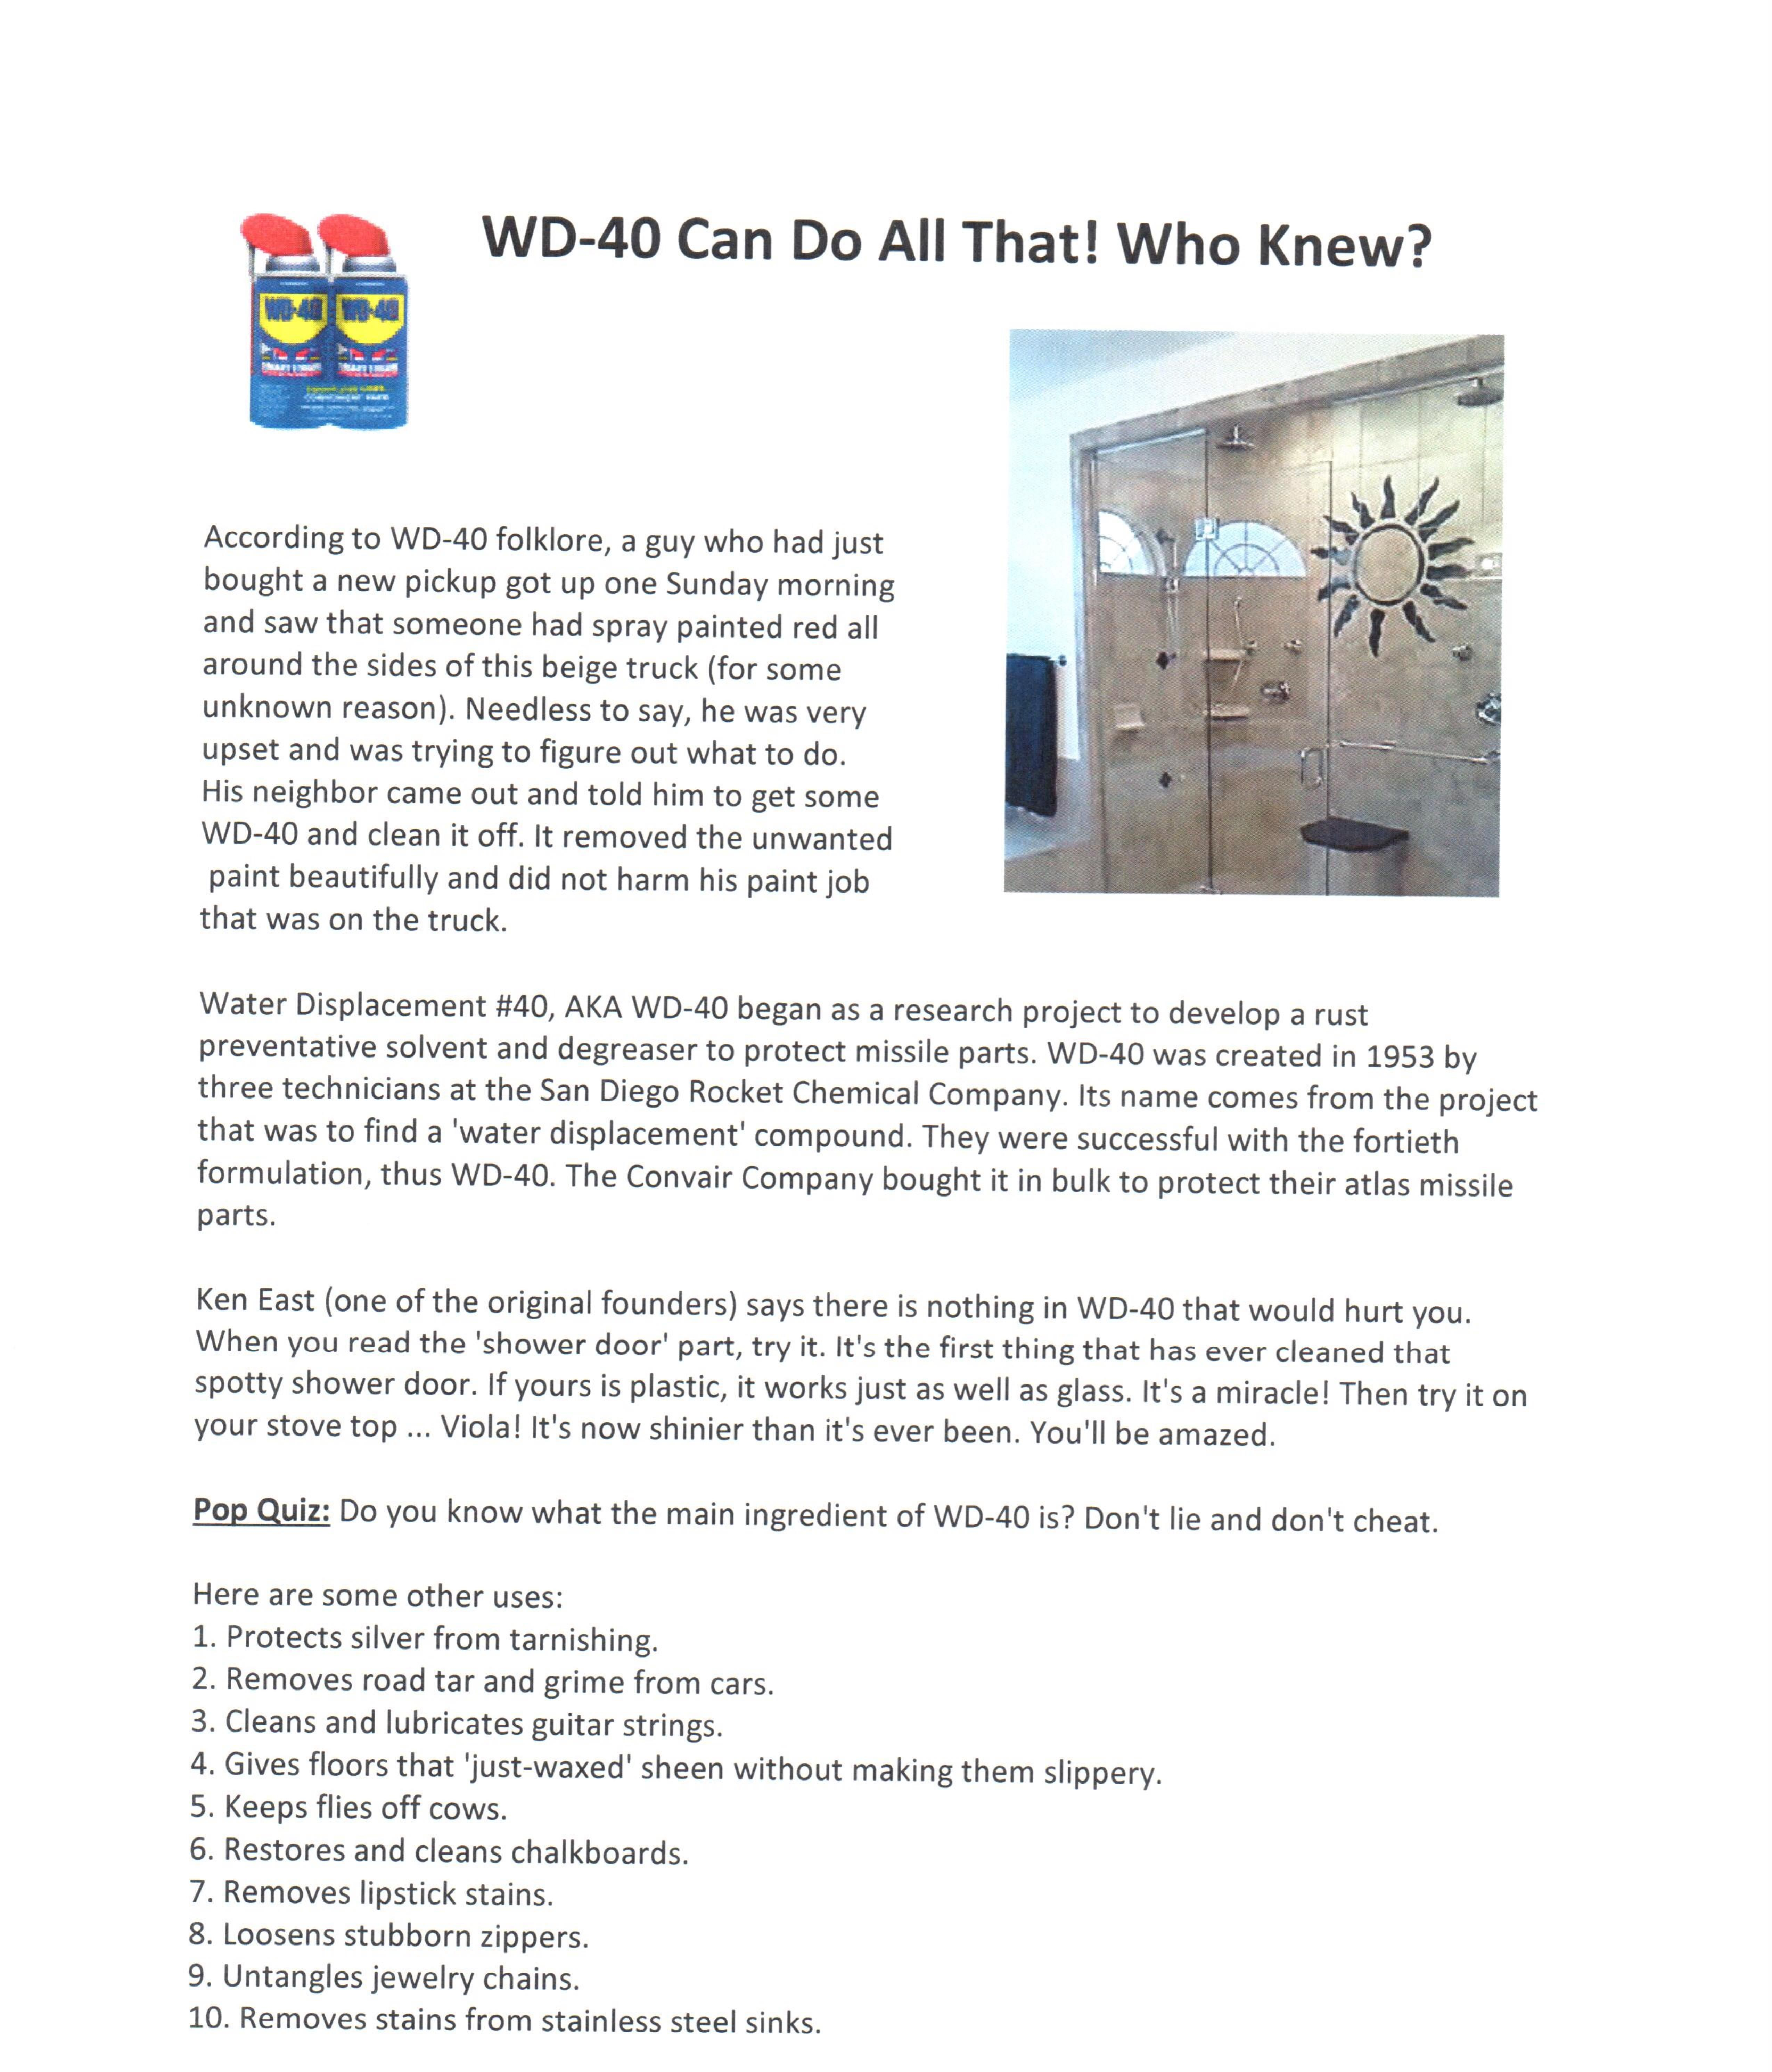 Wd40 40 Uses 10 Removes Stains From Stainless Steel Sinks 11